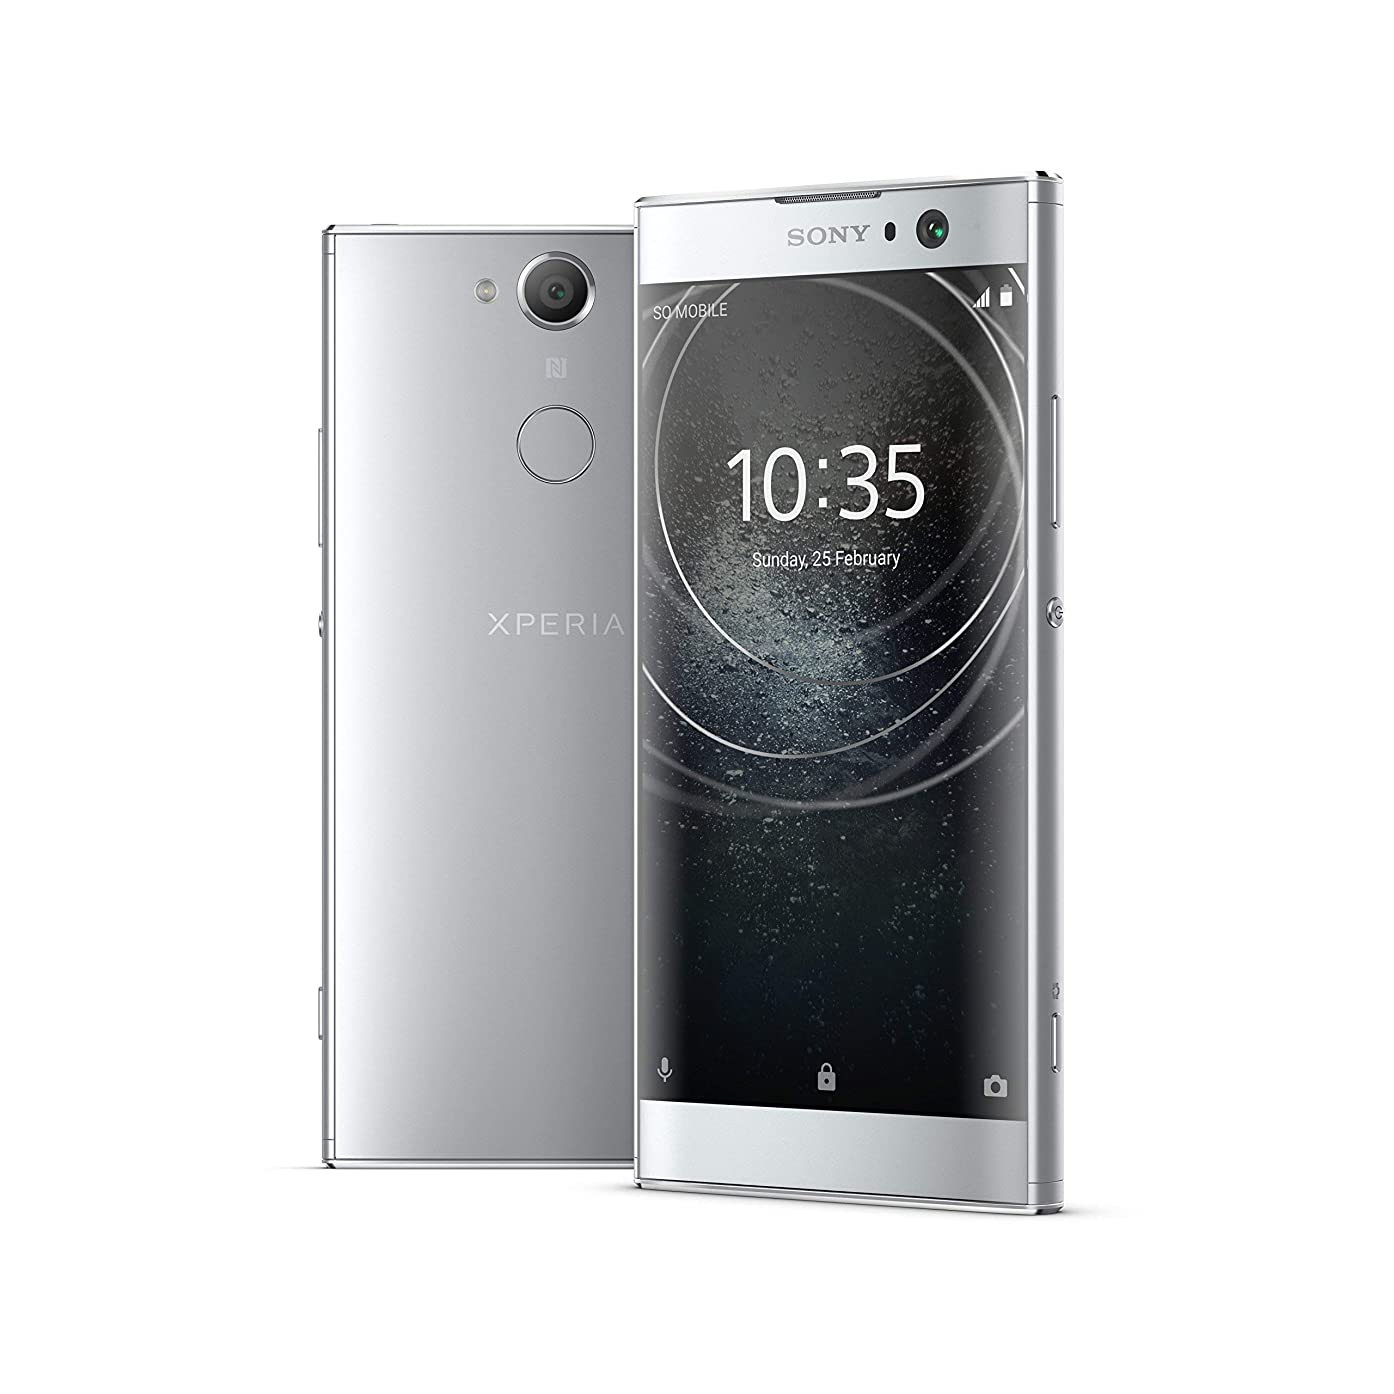 Sony Xperia XA2 Factory Unlocked Phone - 5.2in Screen - 32GB - Silver (U.S. Warranty) (Renewed)